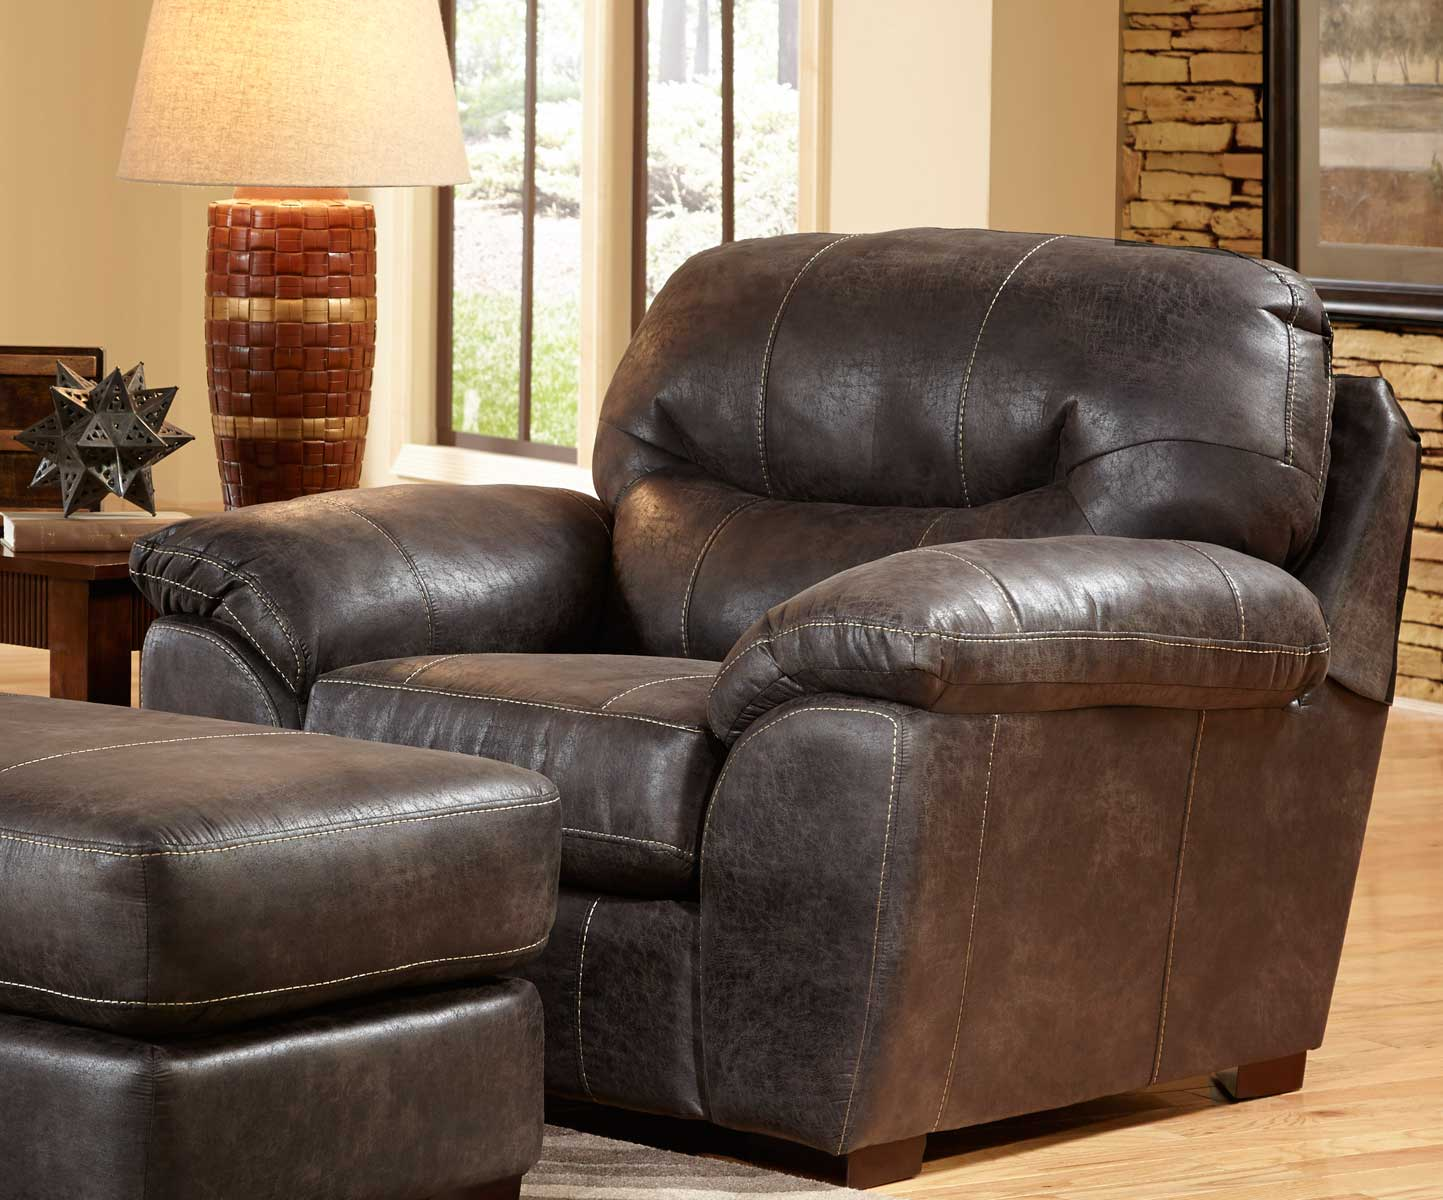 Jackson Grant Bonded Leather Chair Steel Jf 4453 01